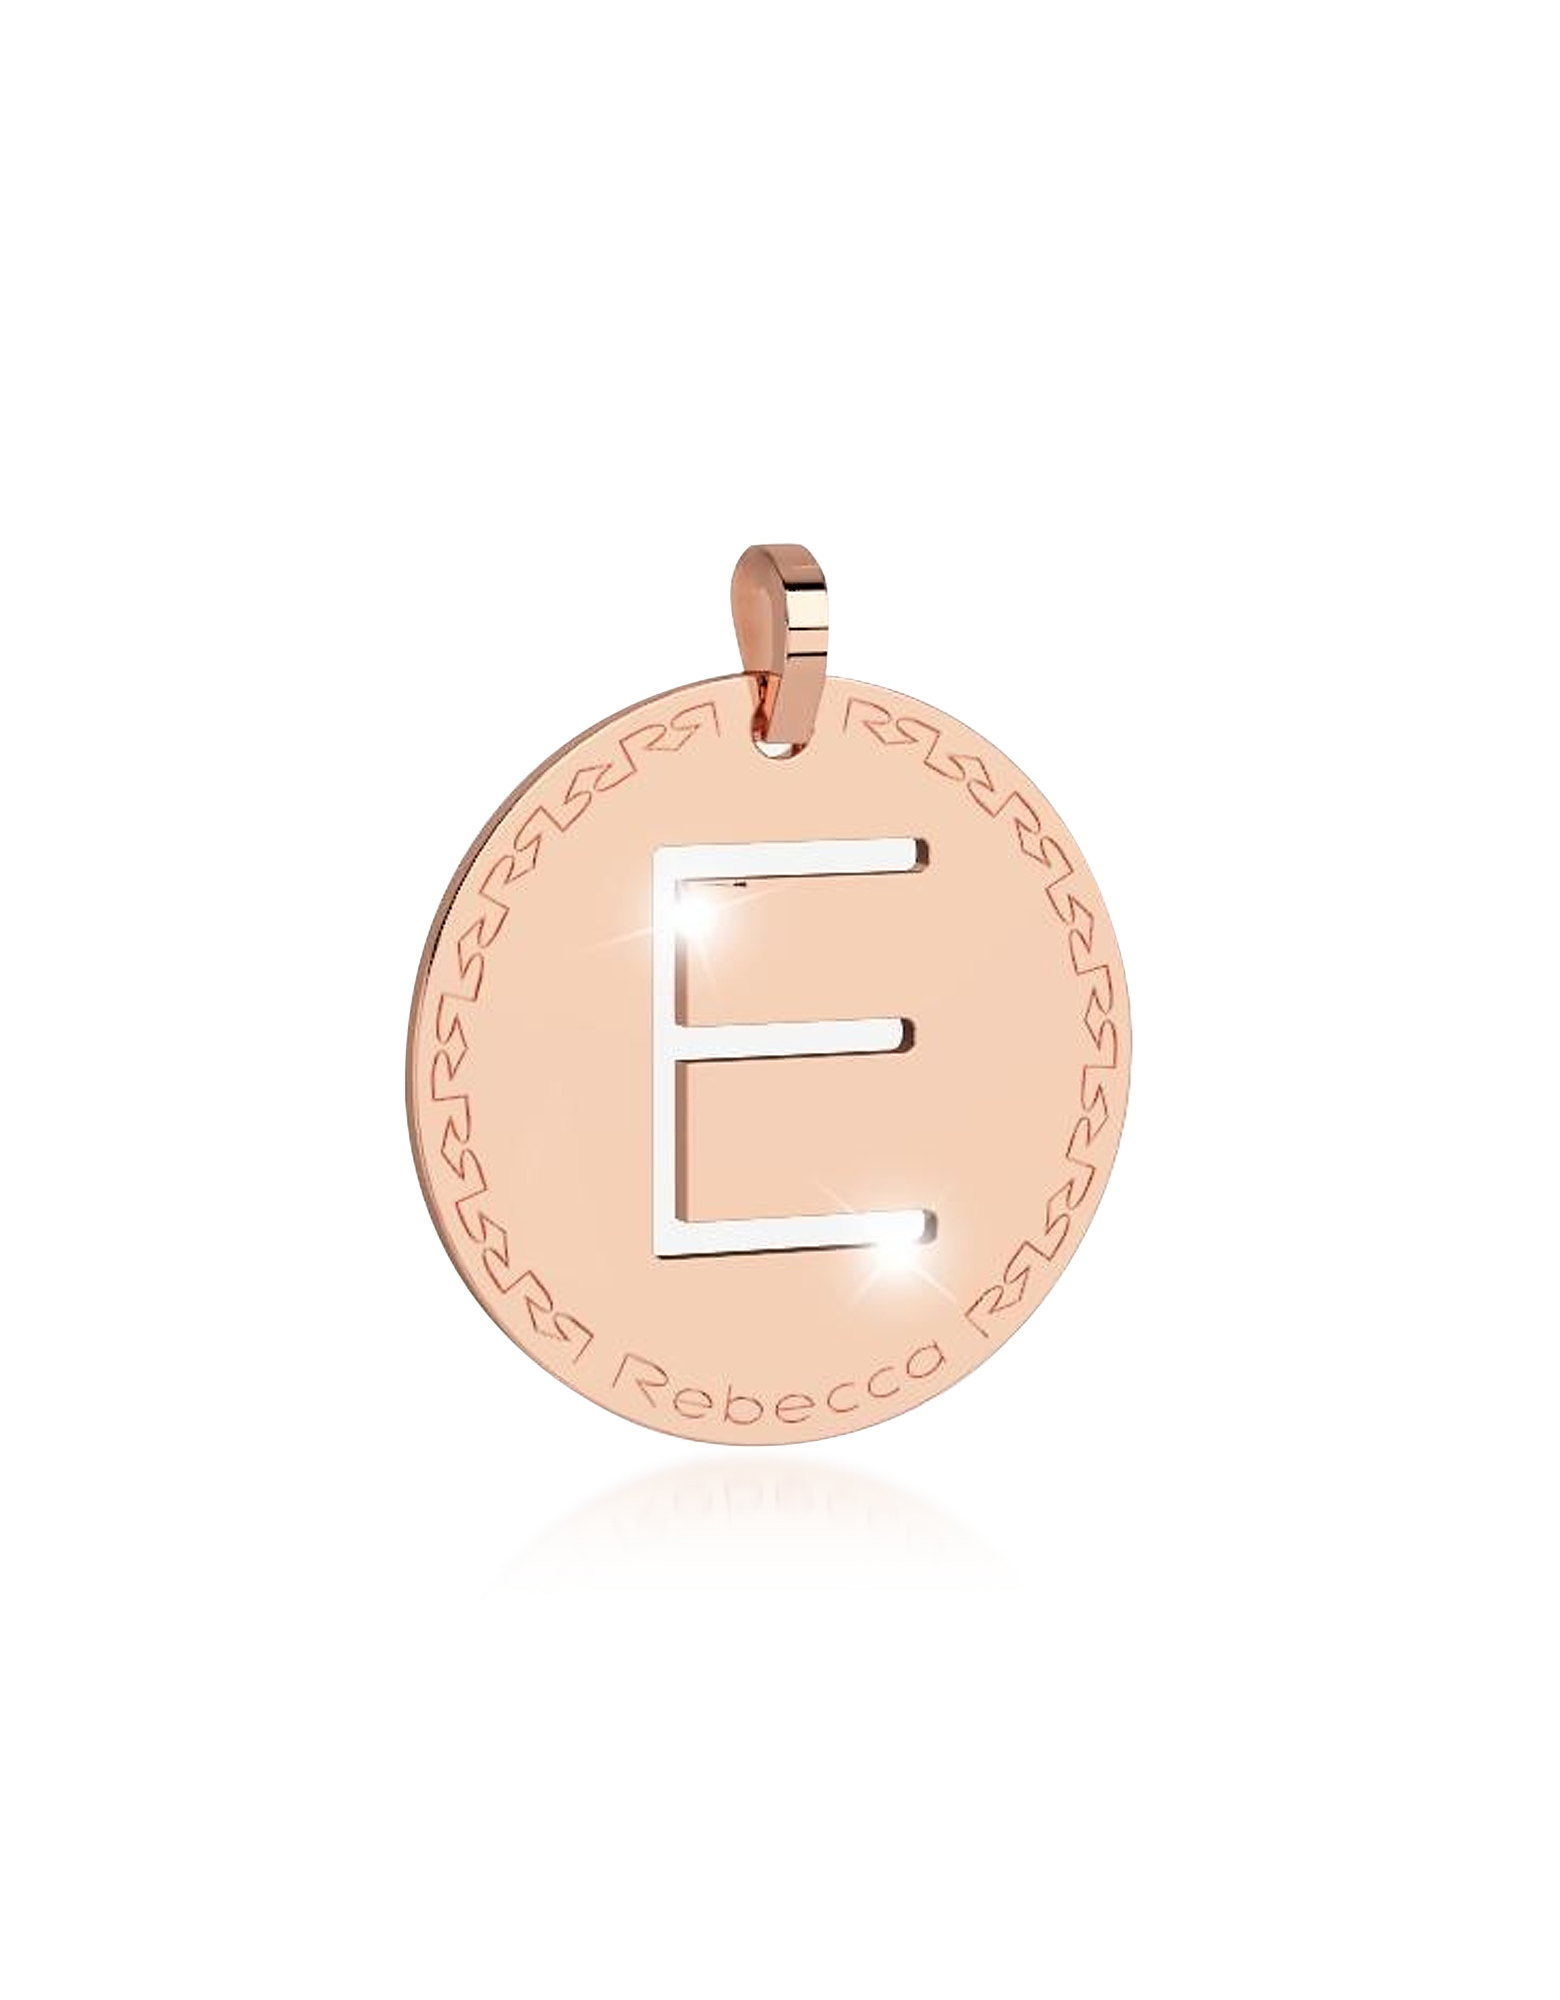 Rebecca Designer Necklaces, Rose Gold-plated Bronze E Charm W/Rhodium-plated Necklace